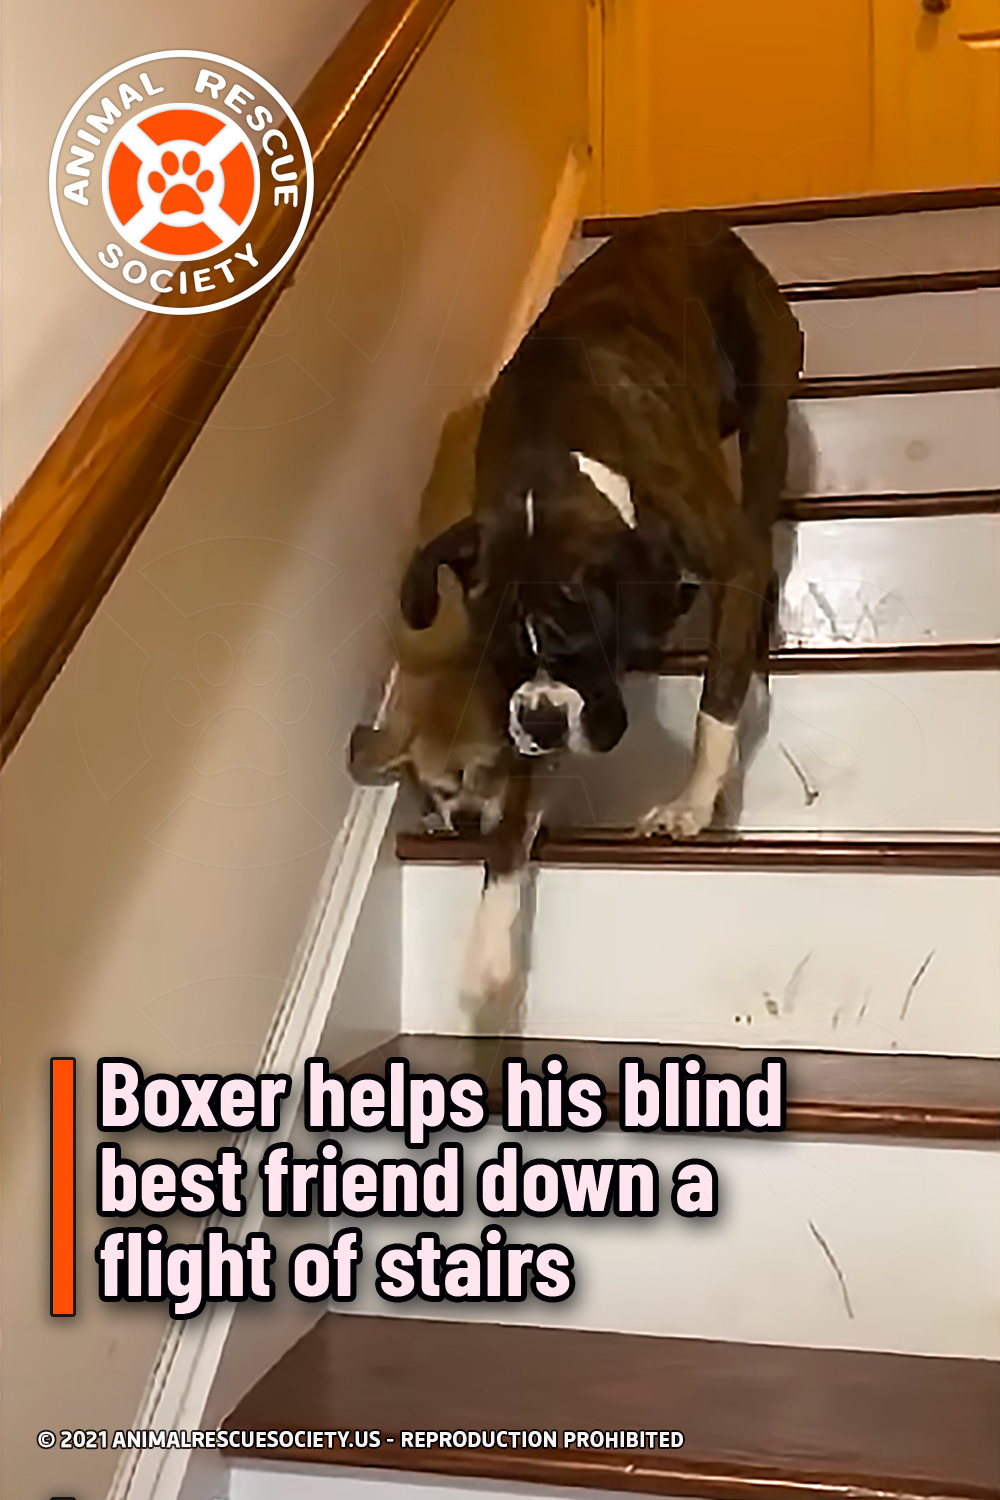 Boxer helps his blind best friend down a flight of stairs